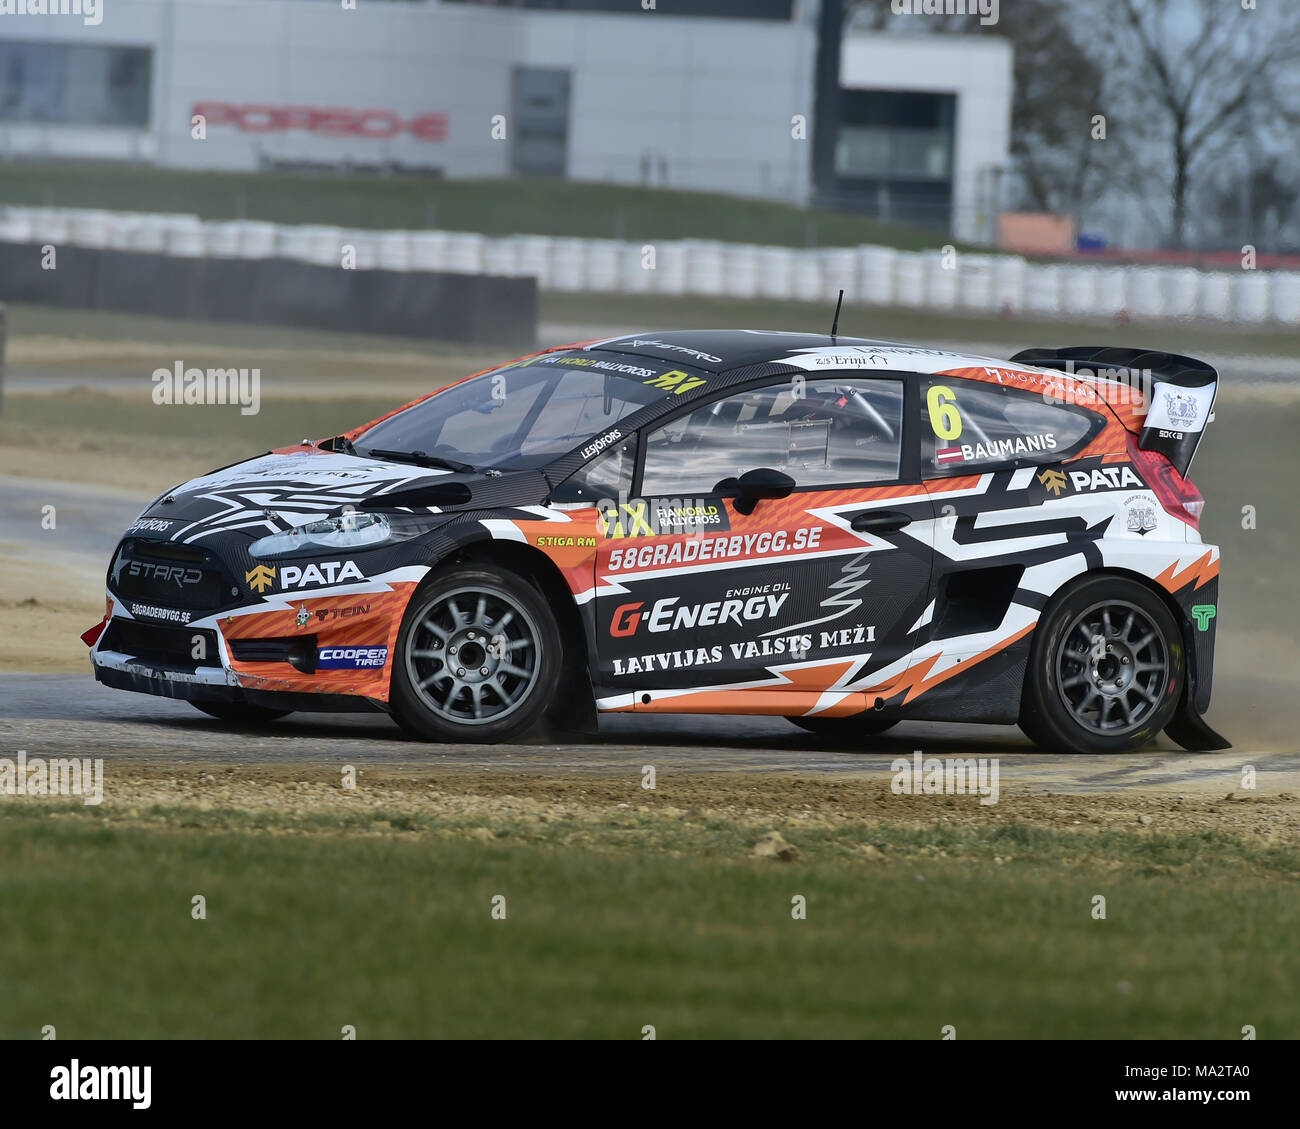 silverstone northamptonshire england 26th march 2018 janis baumanis ford fiesta rx for the. Black Bedroom Furniture Sets. Home Design Ideas